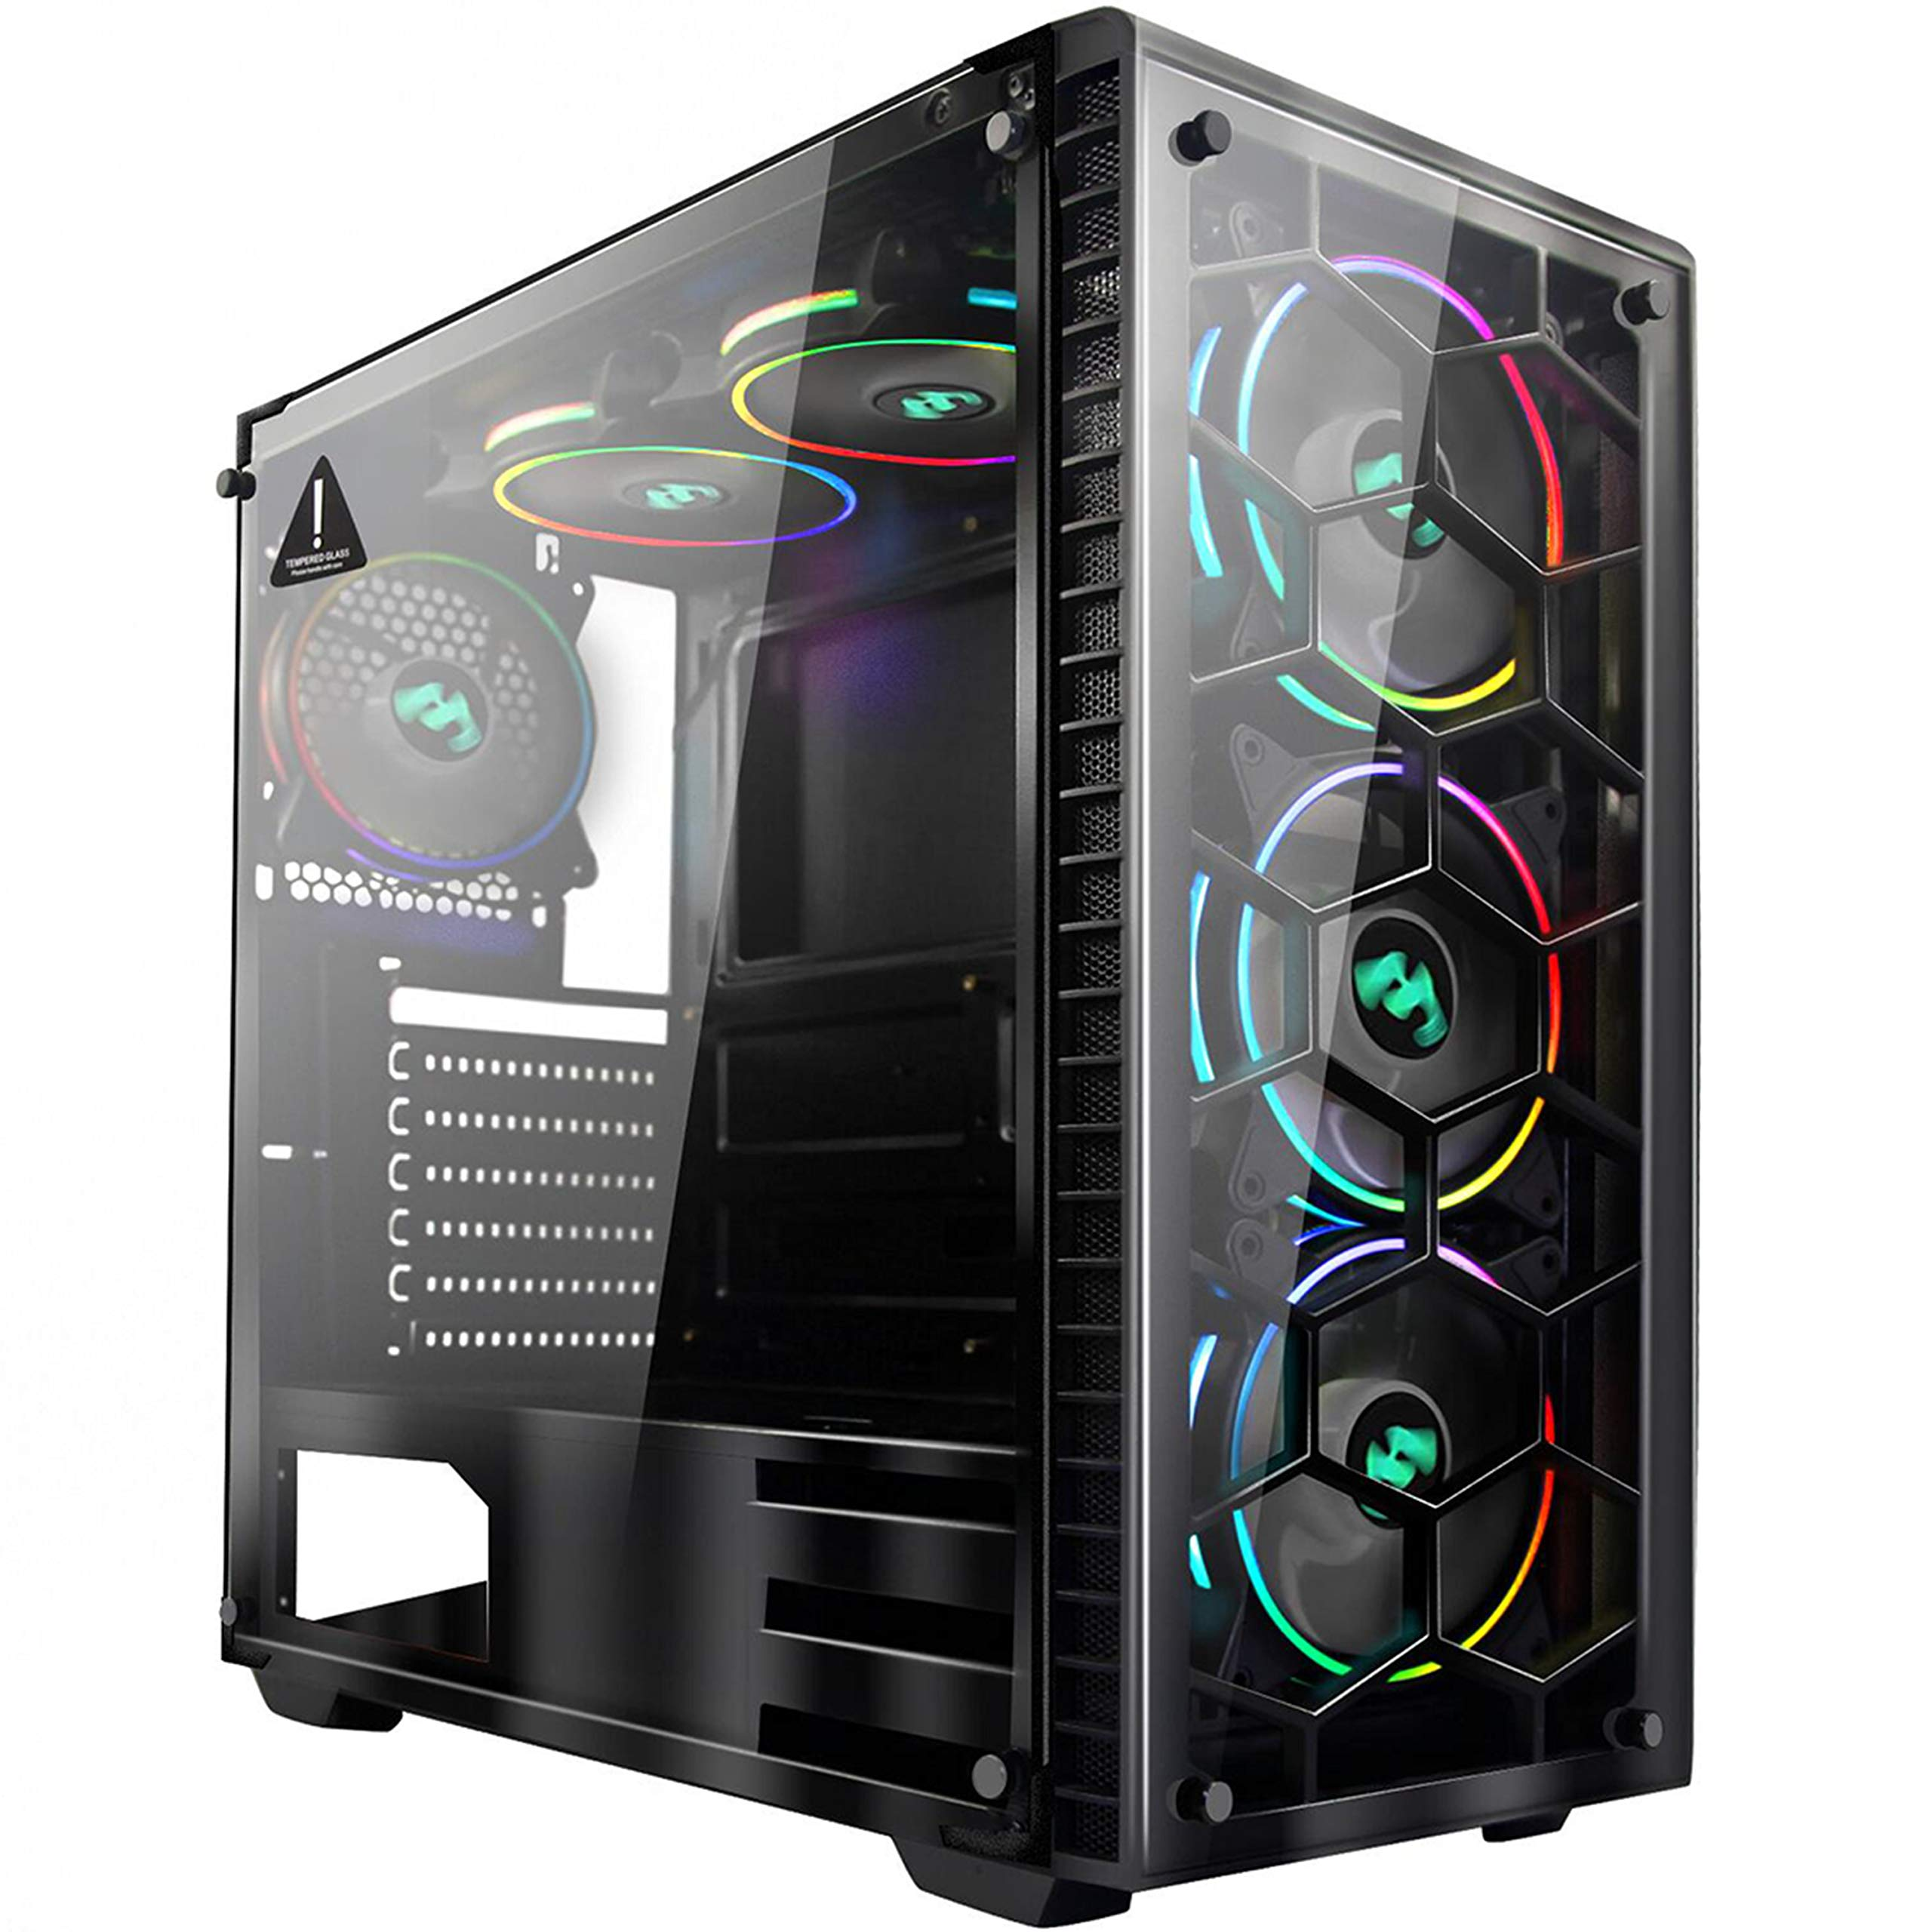 MUSETEX Phantom Black ATX Mid-Tower Desktop Computer Gaming Case USB 3.0 Ports Tempered Glass Windows with 6pcs 120mm LED RGB Fans Pre-Installed(903-S6) by MUSETEX